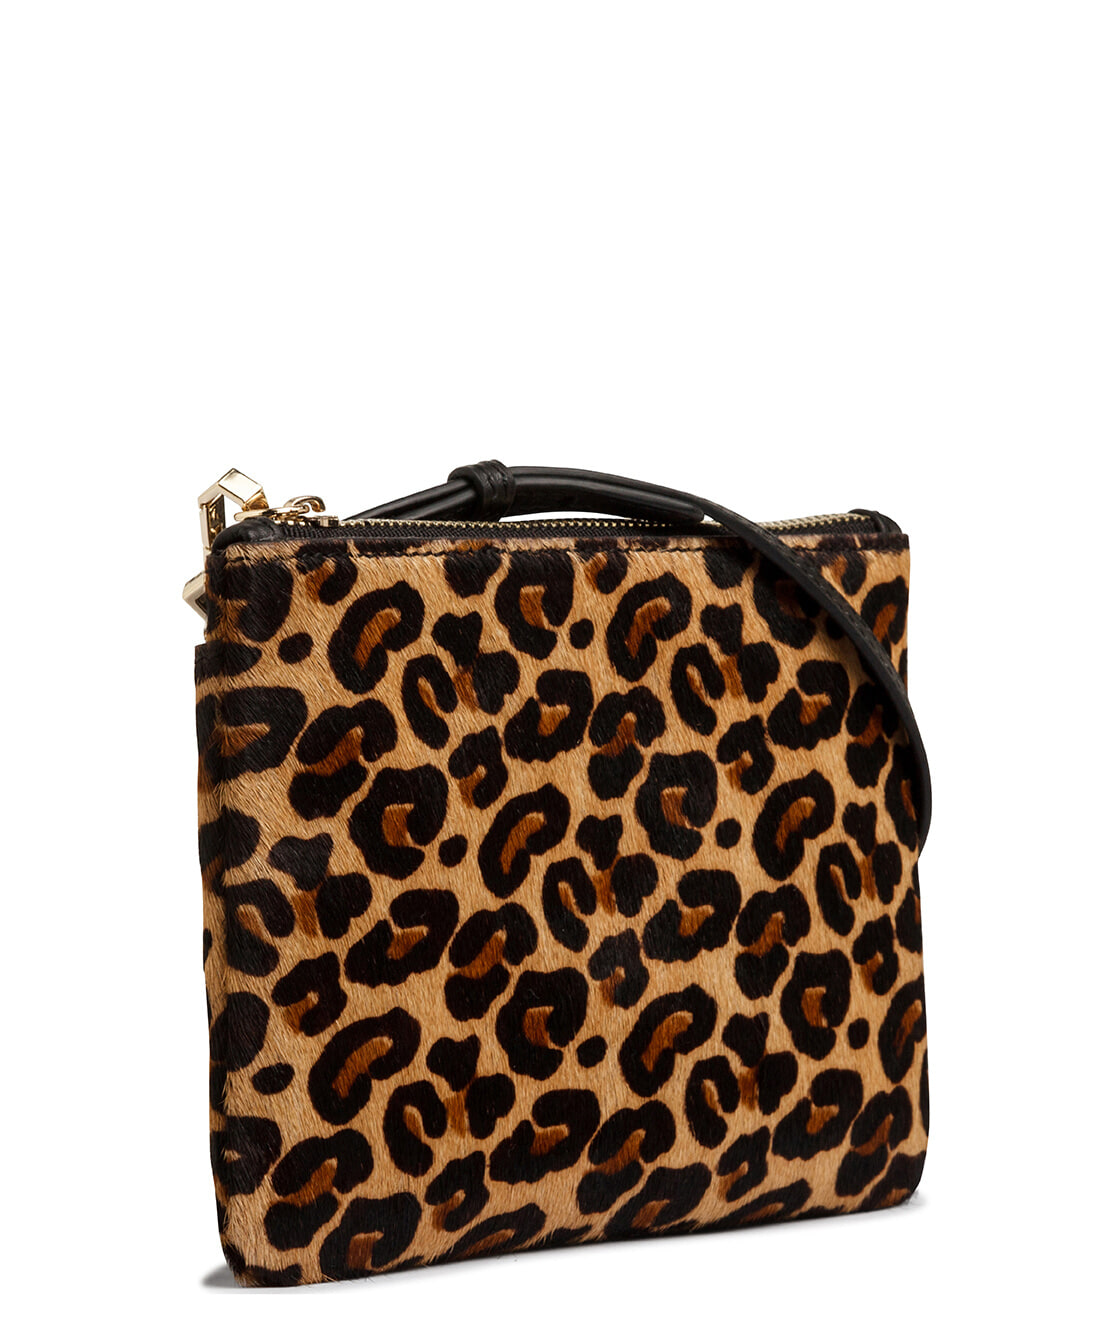 448eb12ee3e6 Outlet - Womens Bags